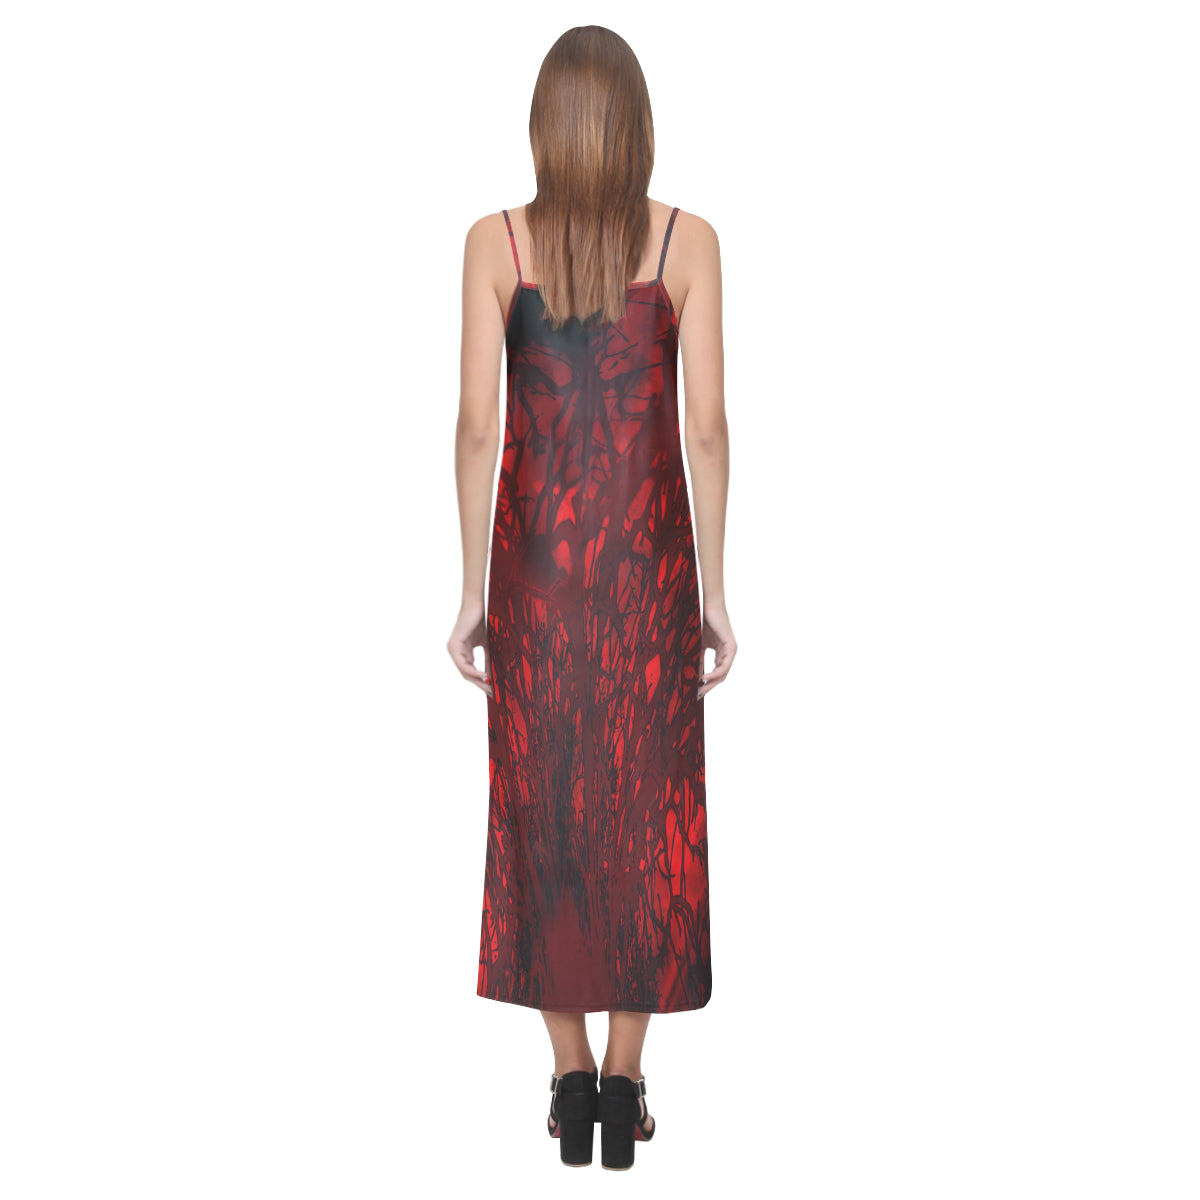 Red Carnage Blood Vein V-Neck Open Fork Long Dress